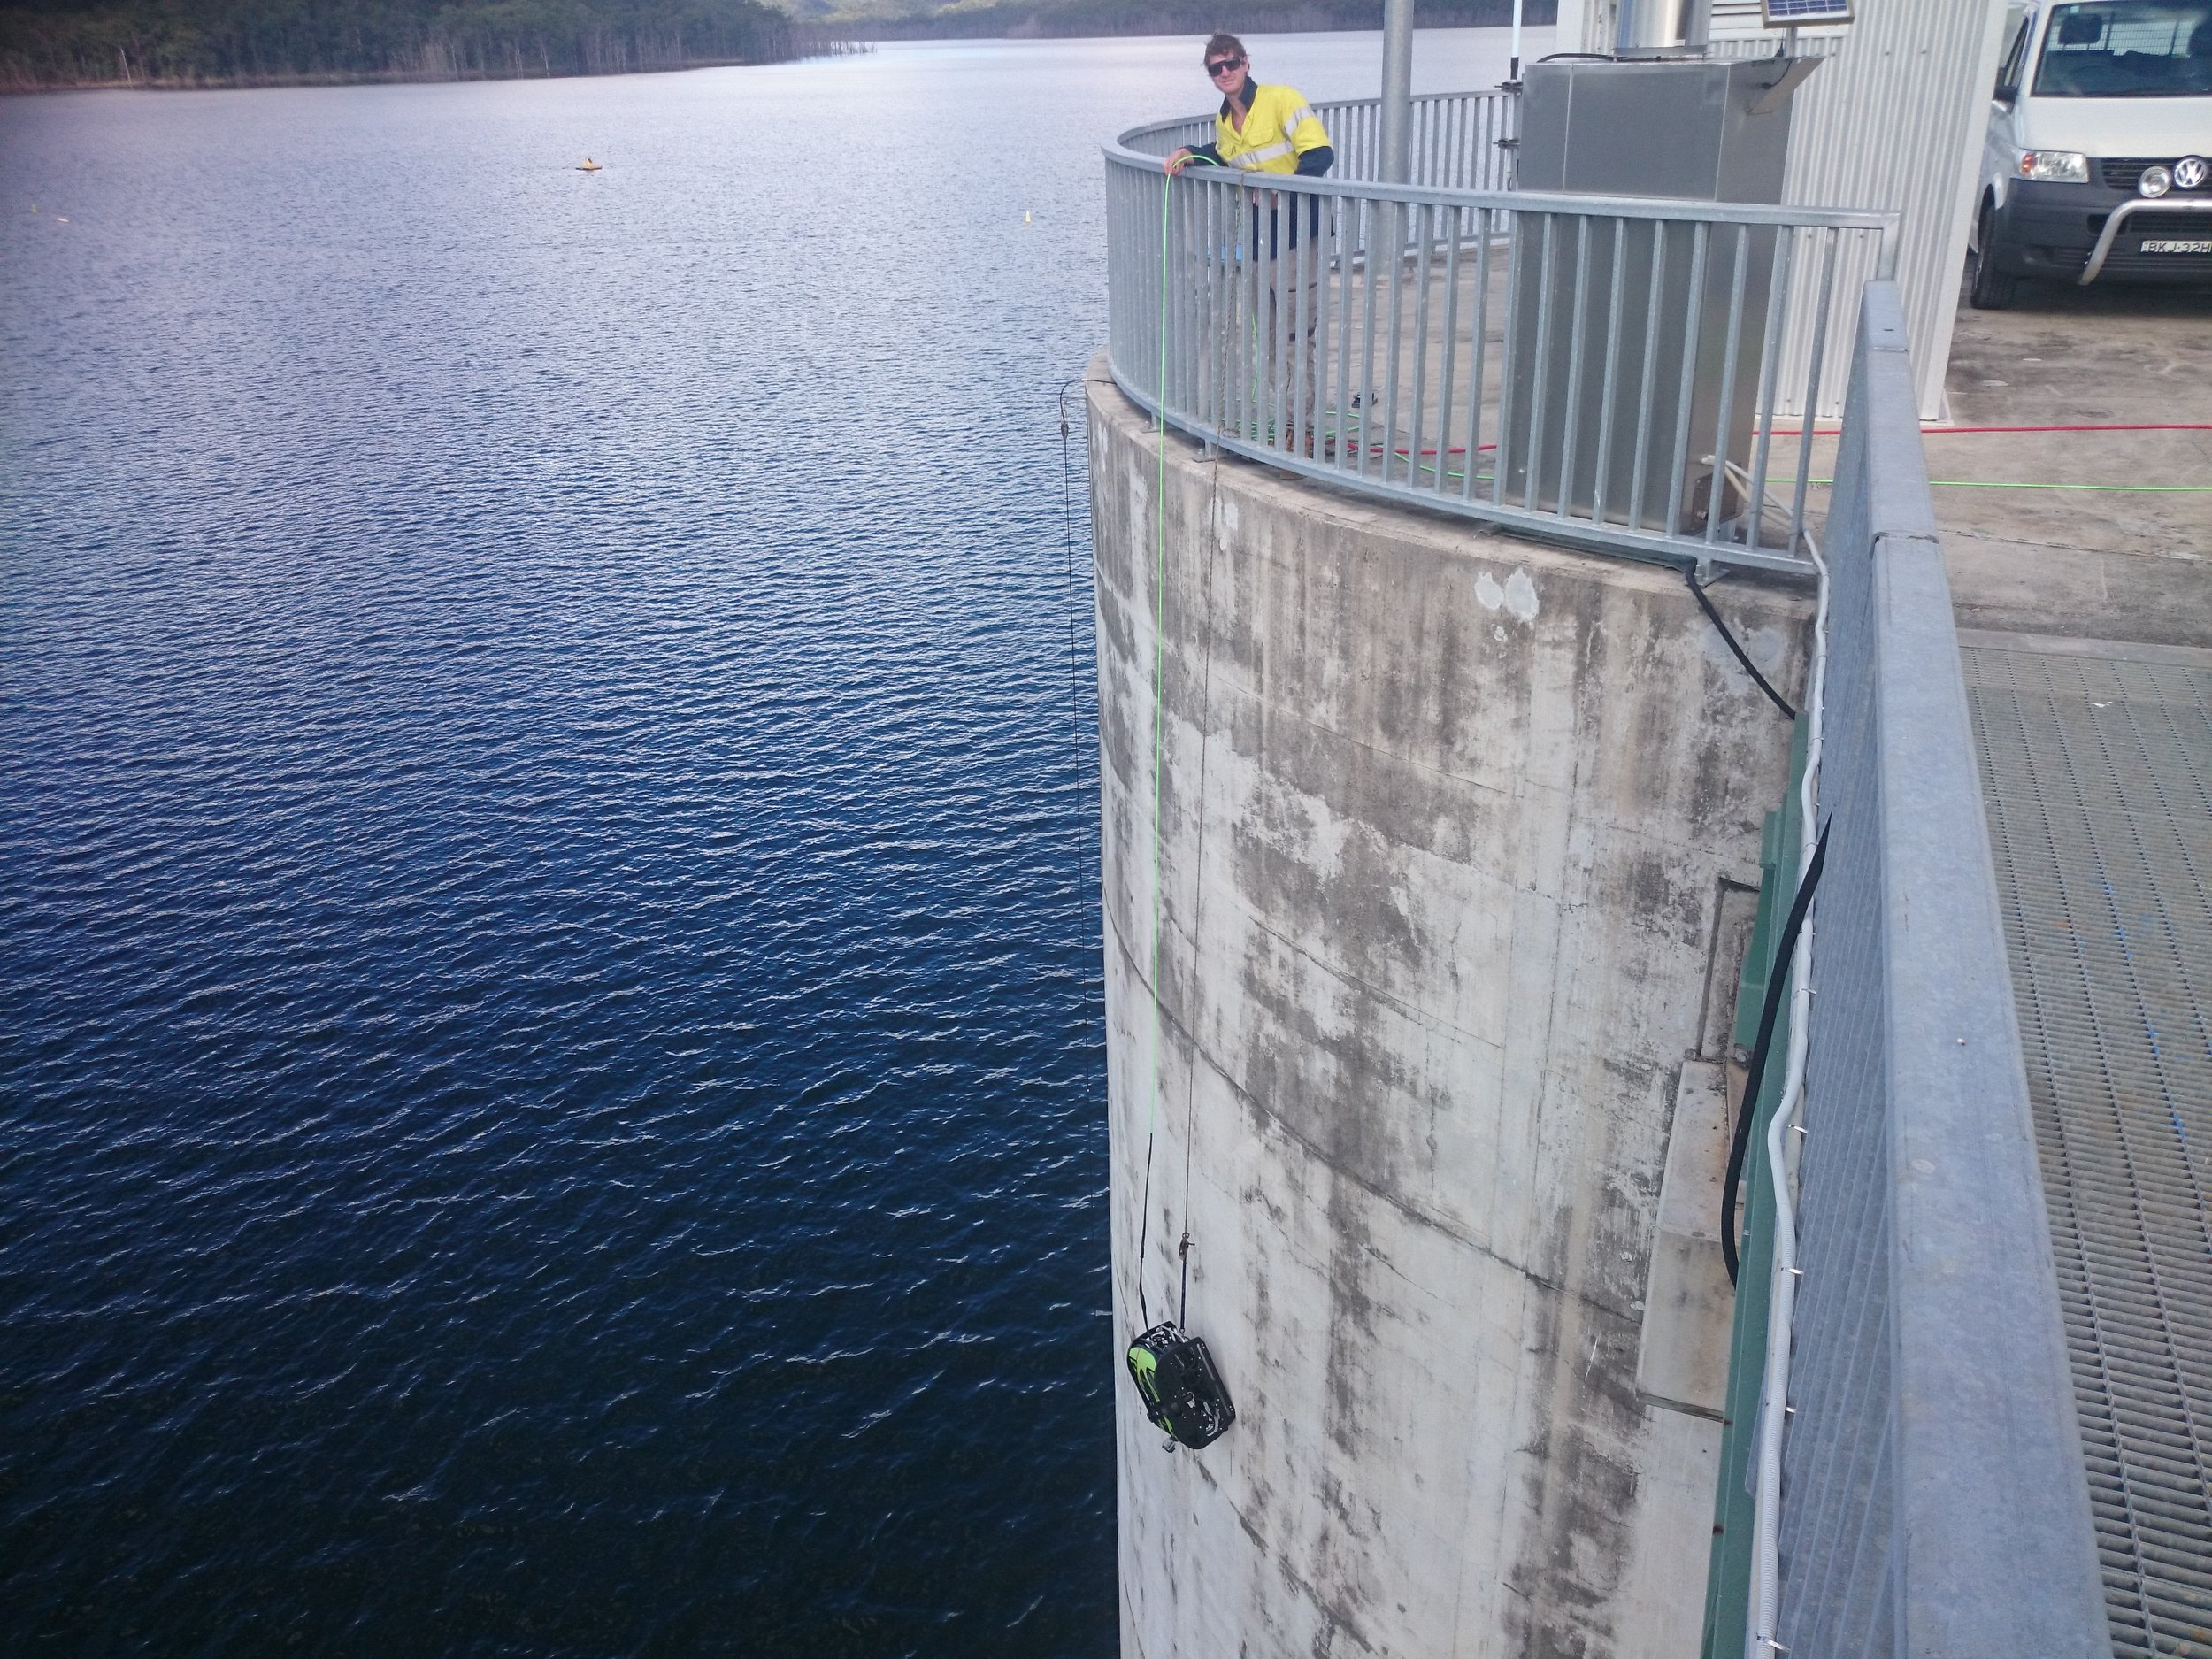 AUS-ROV Dam Inspections at Hinze Dam Remote Control Inspection 3.JPG